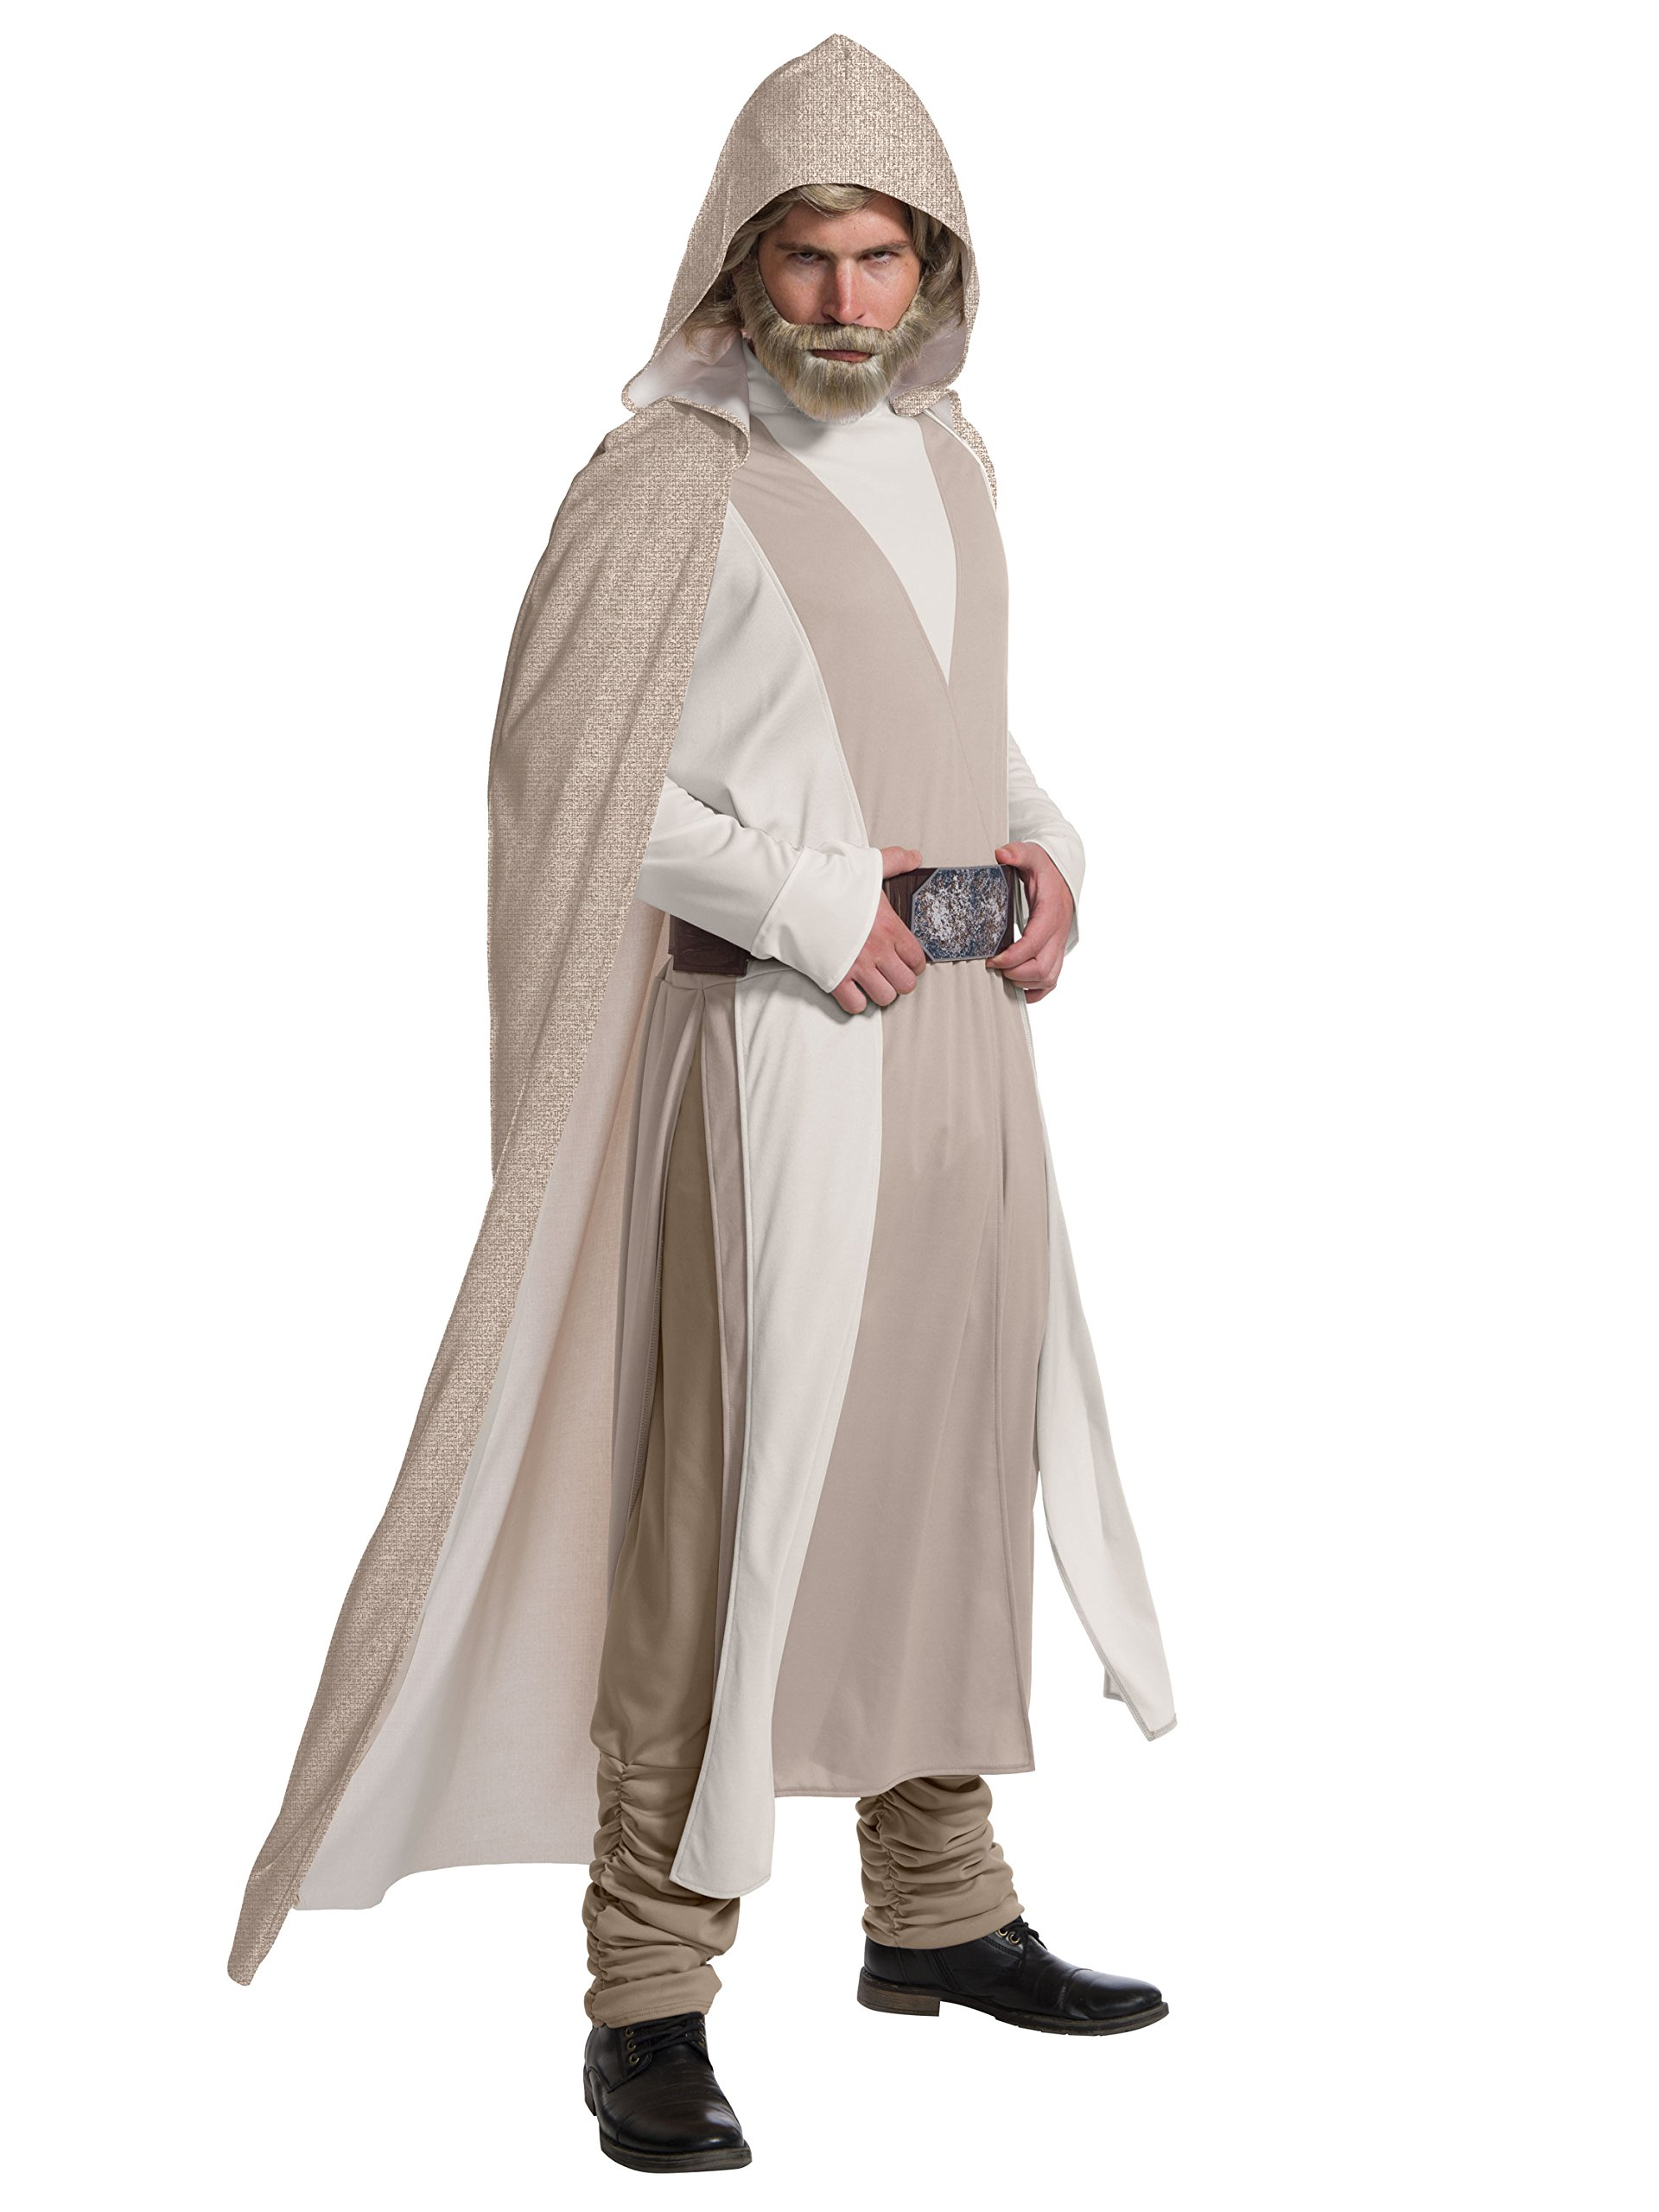 Rubie's Star Wars Episode VIII: The Last Jedi Men's Deluxe Luke Skywalker Costume  Beige  Standard